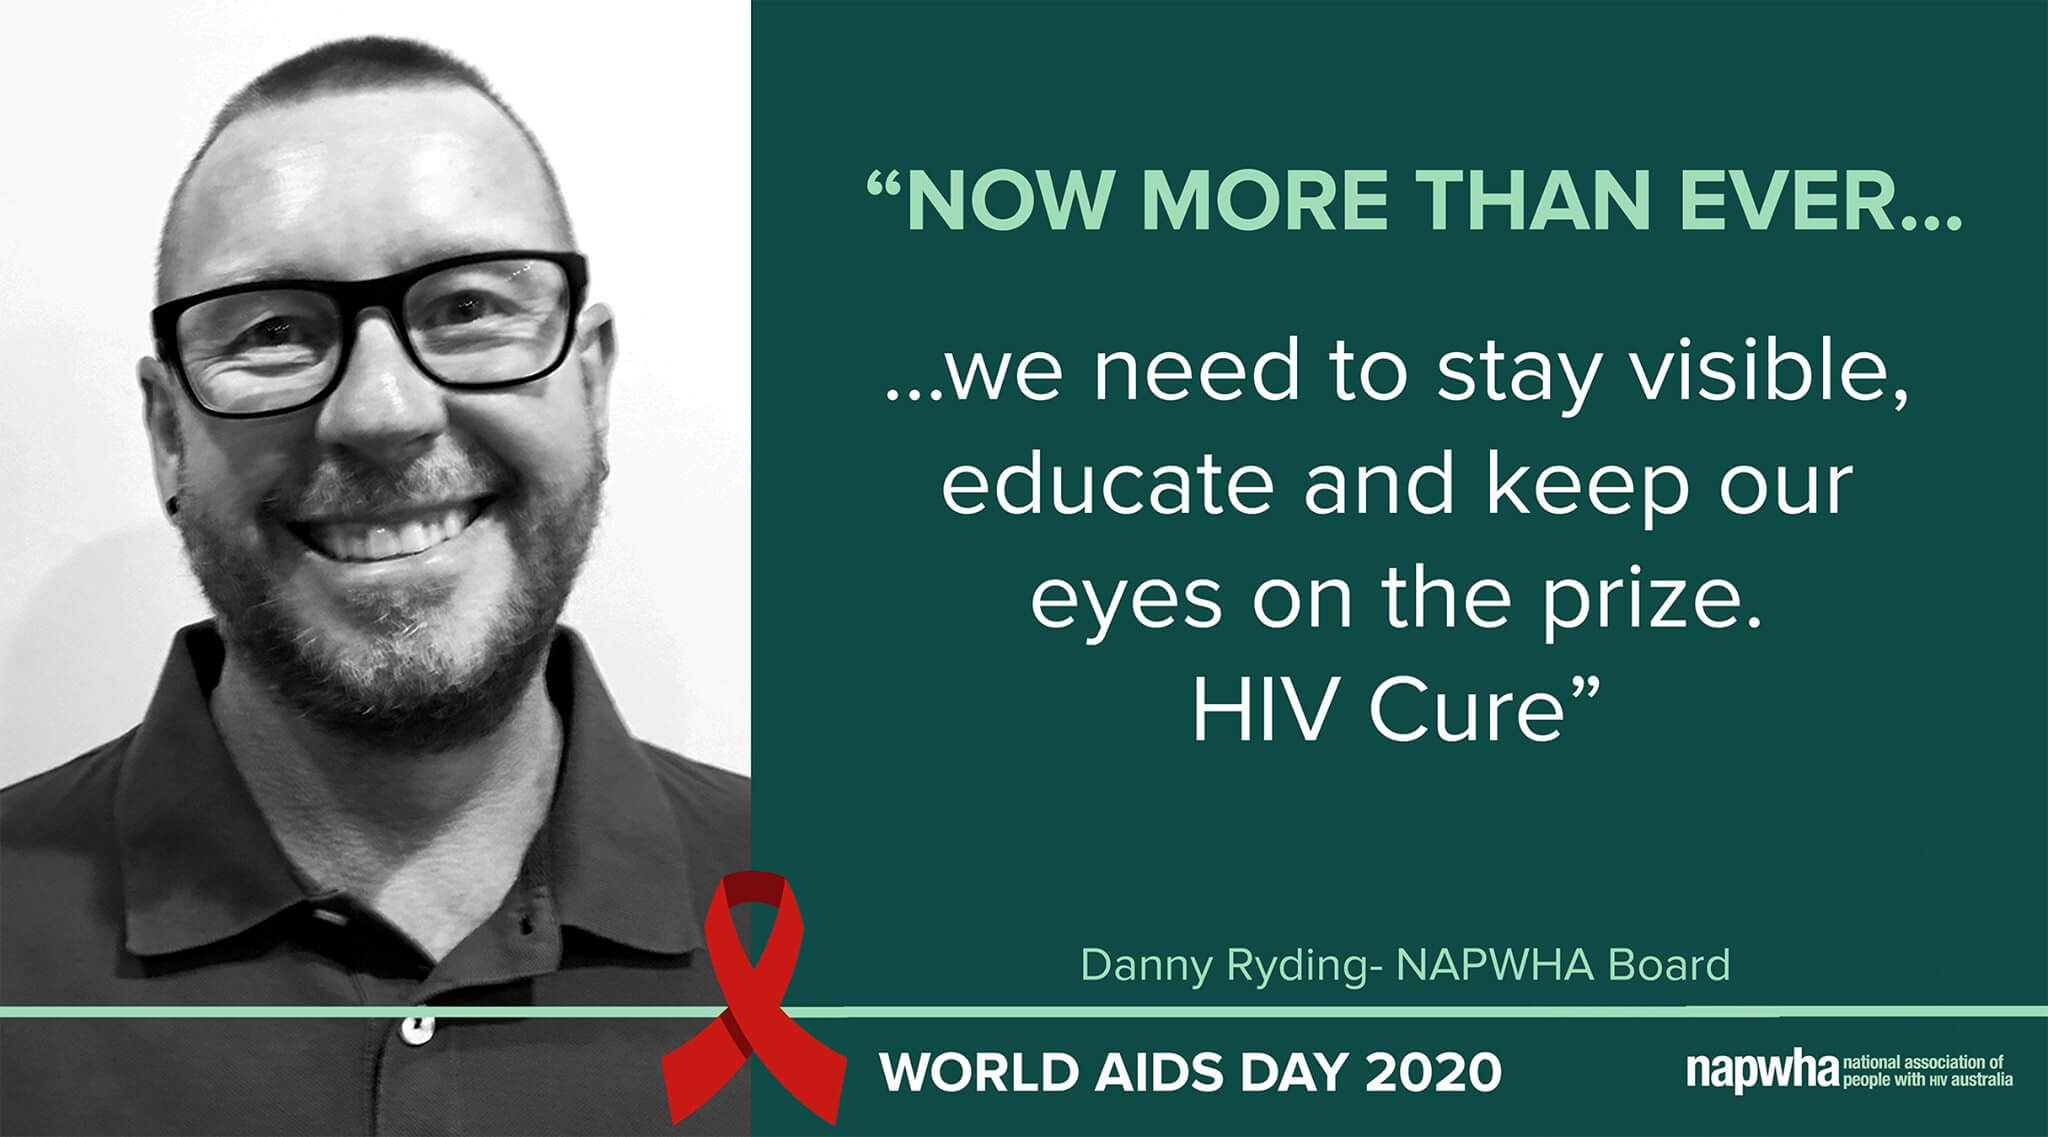 Danny Ryding of the NAPWHA Board provides a World AIDS Day 2020 message